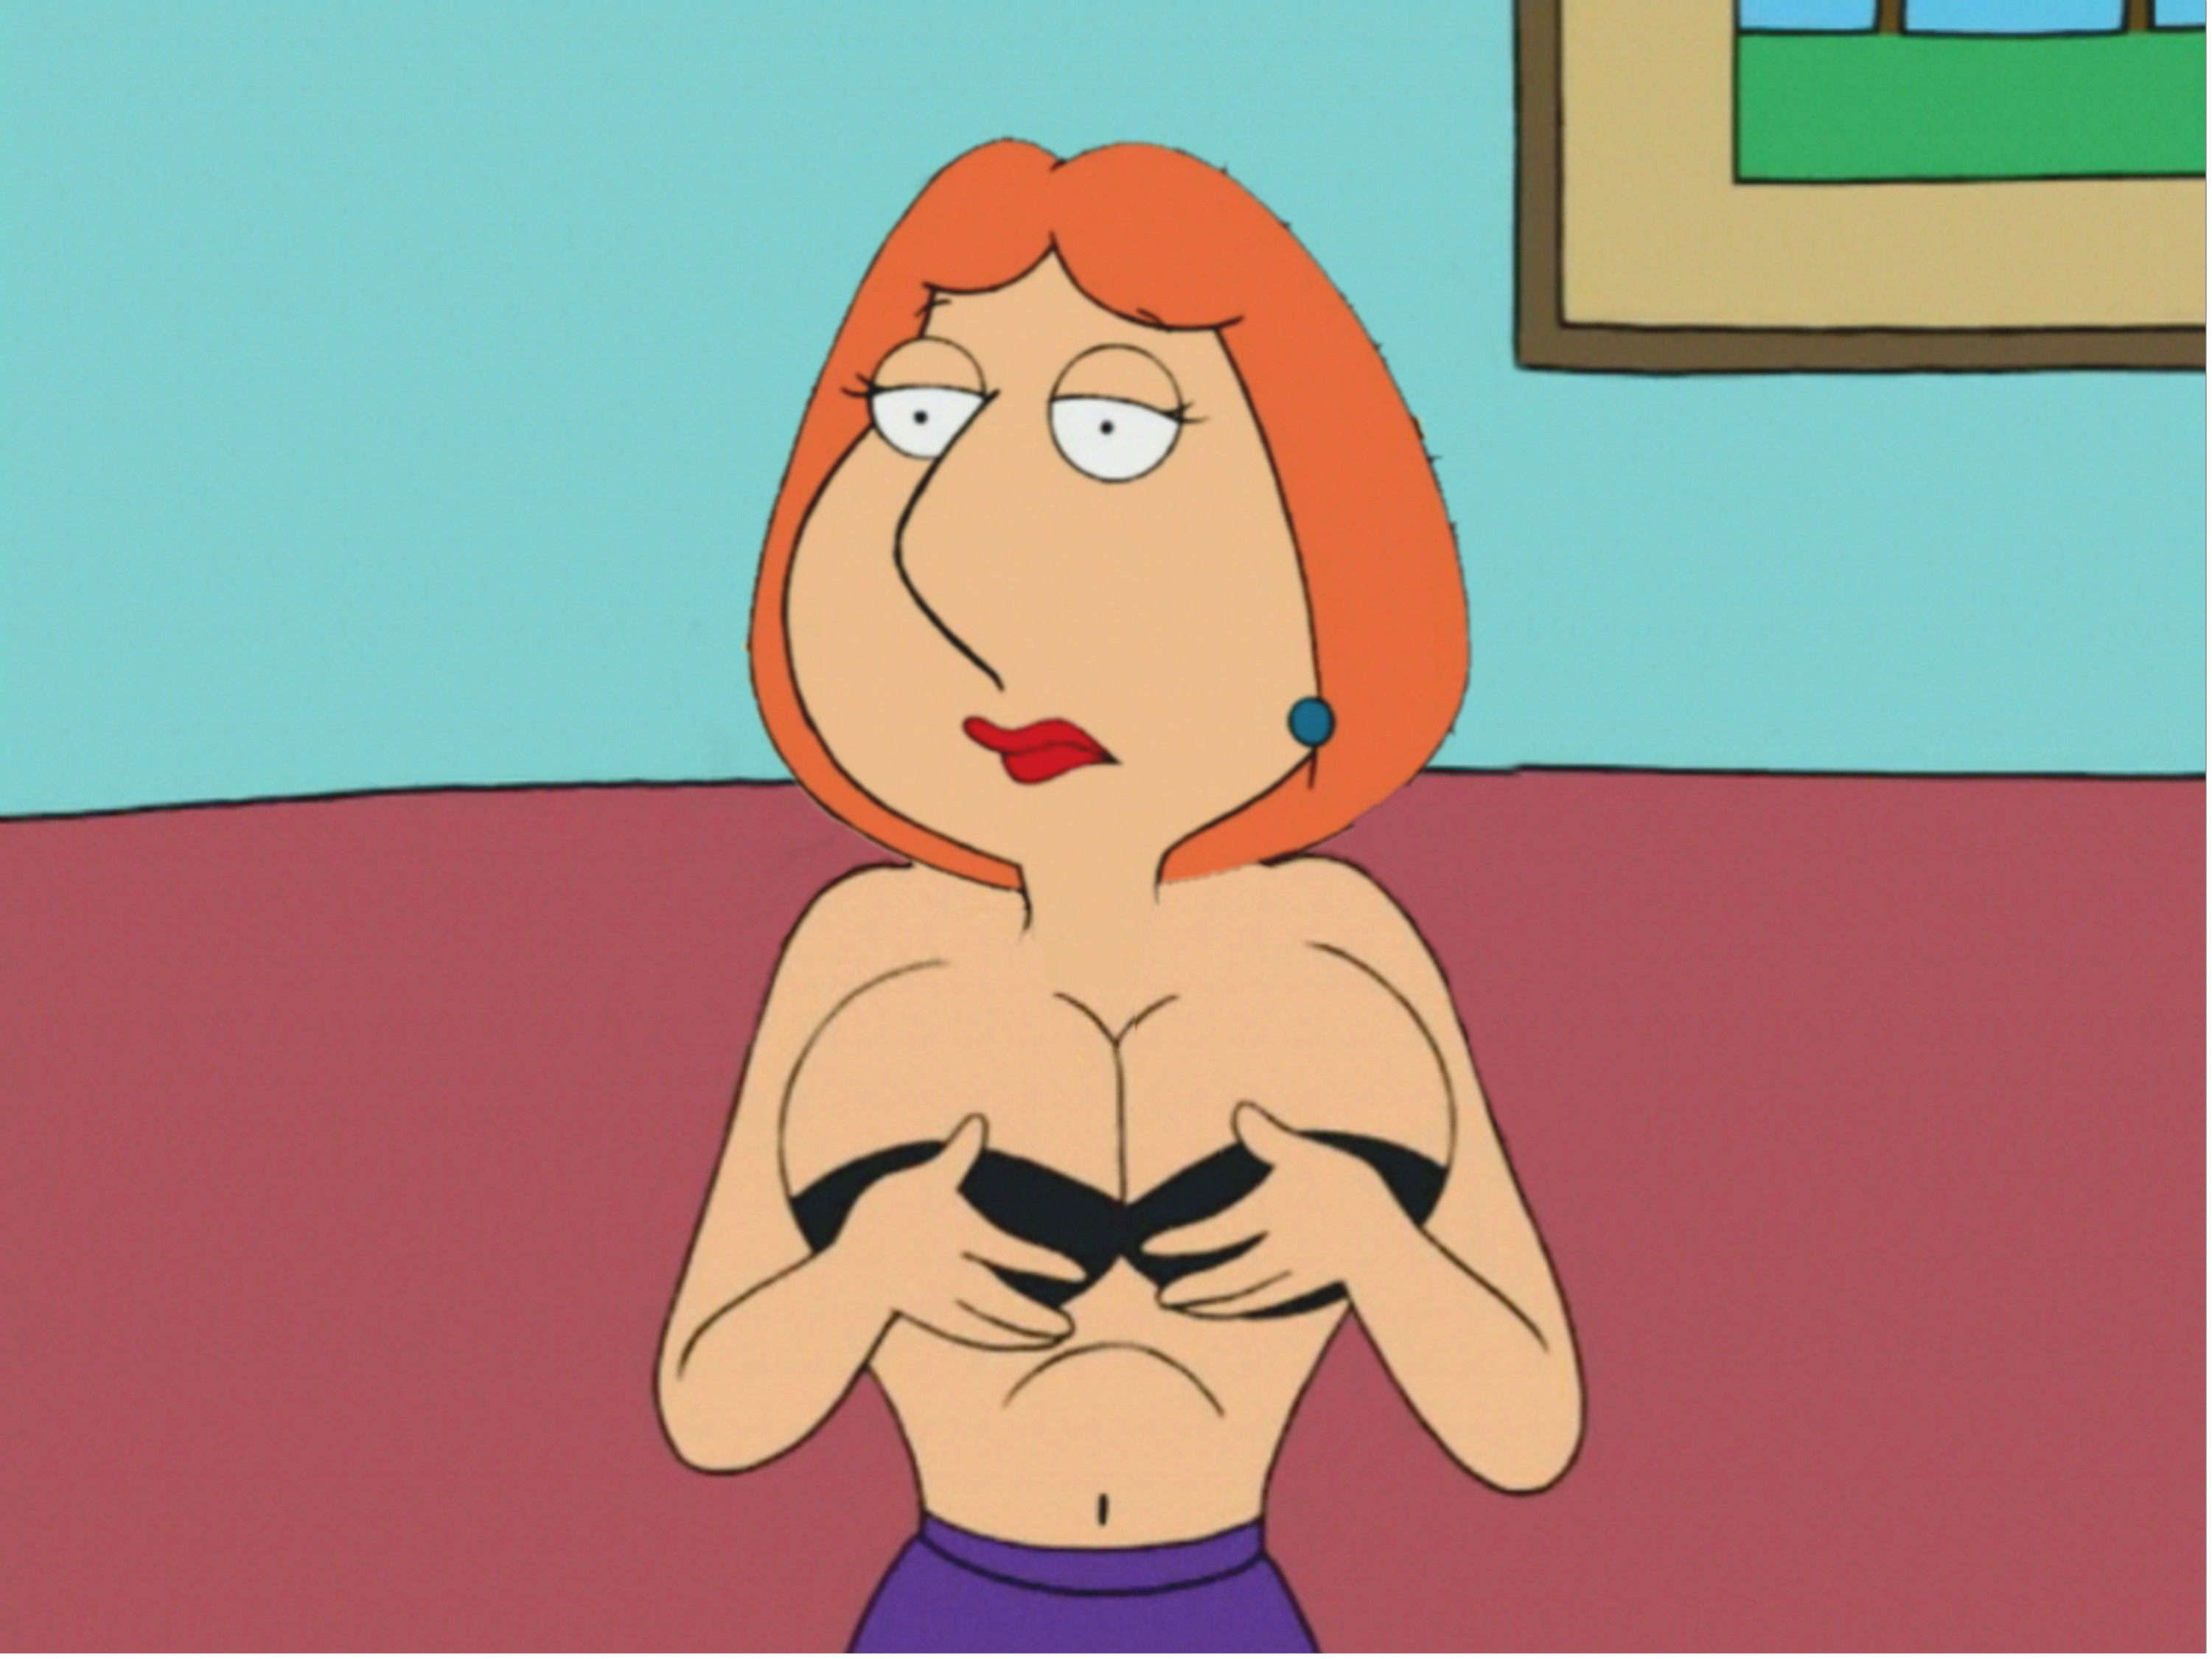 Something and Meg griffin tied up naked